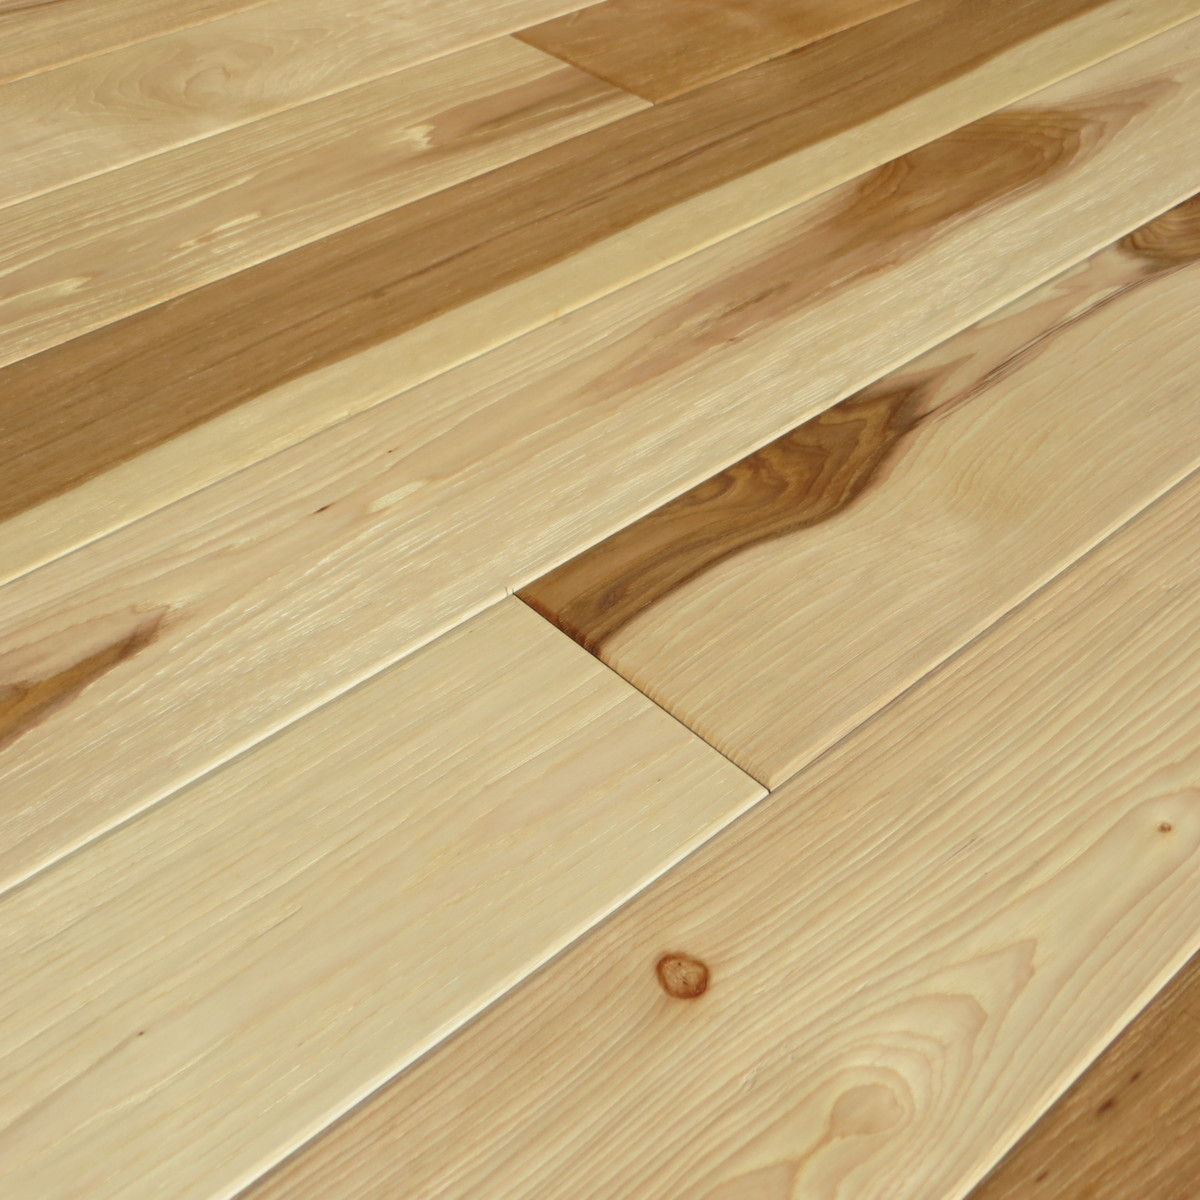 Is Hickory A Good Wood For Floors: Millennium Hickory Oiled Hand Scraped Hardwood Flooring